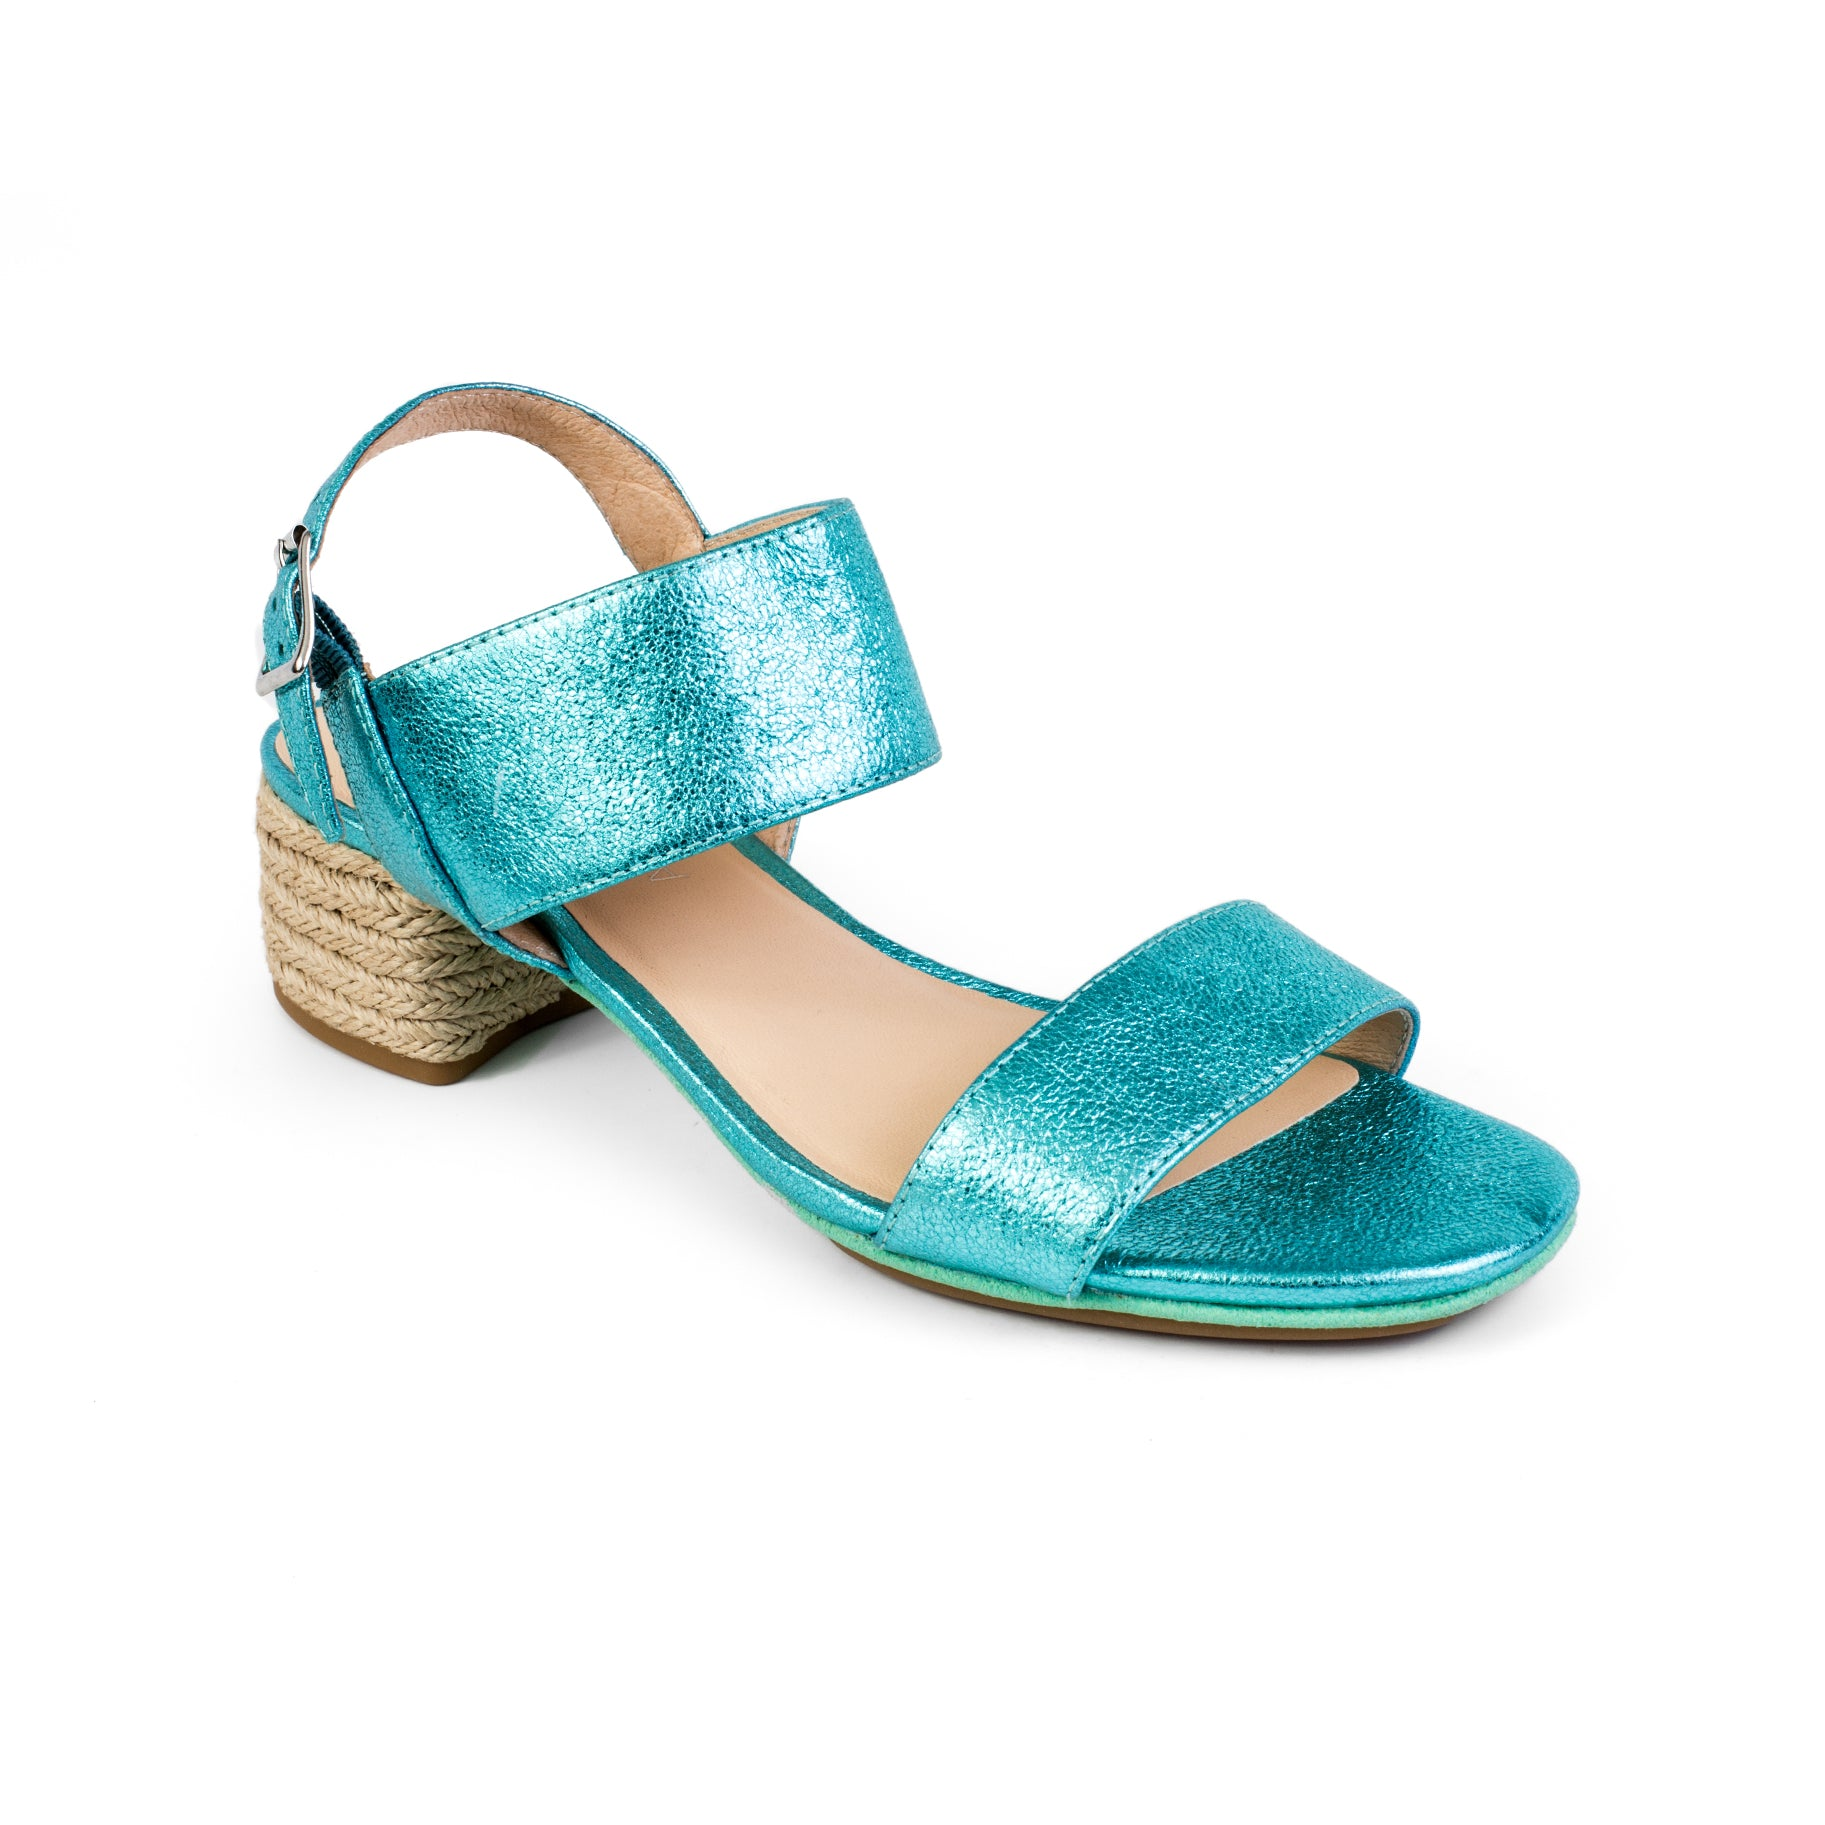 yosi samra turquoise metallic leather block heel